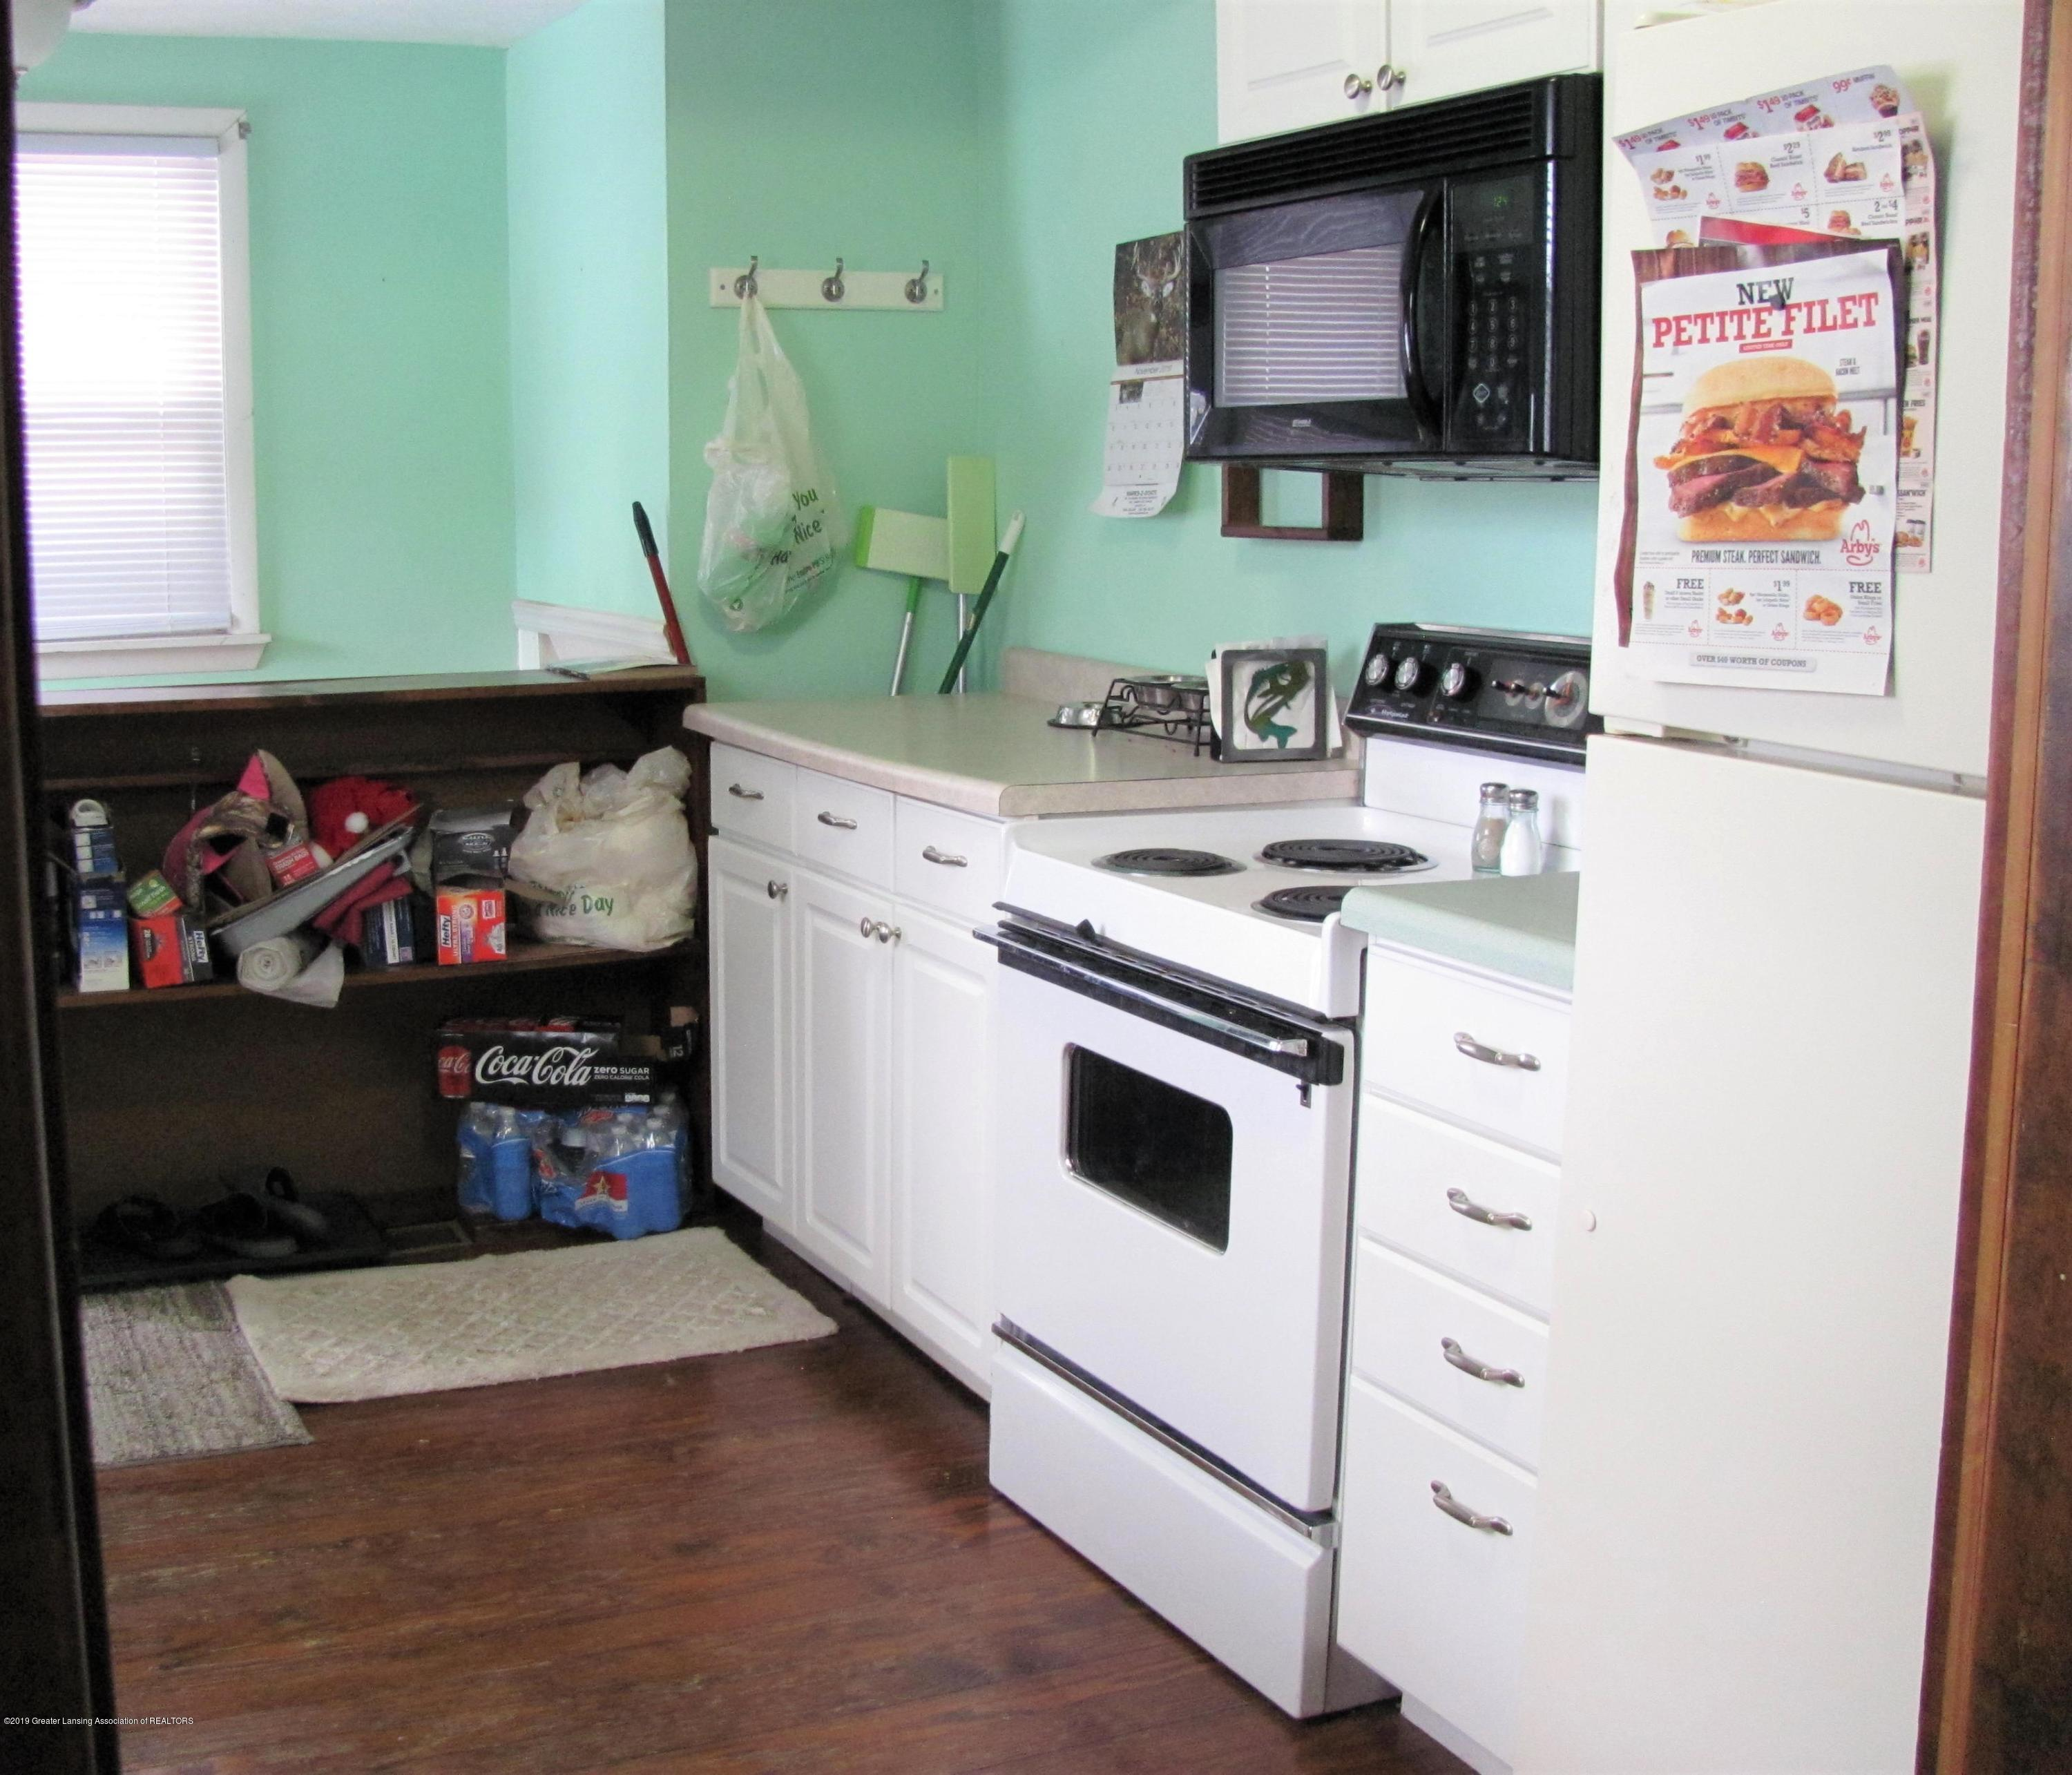 629 N Fairview Ave - Kitchen - 20